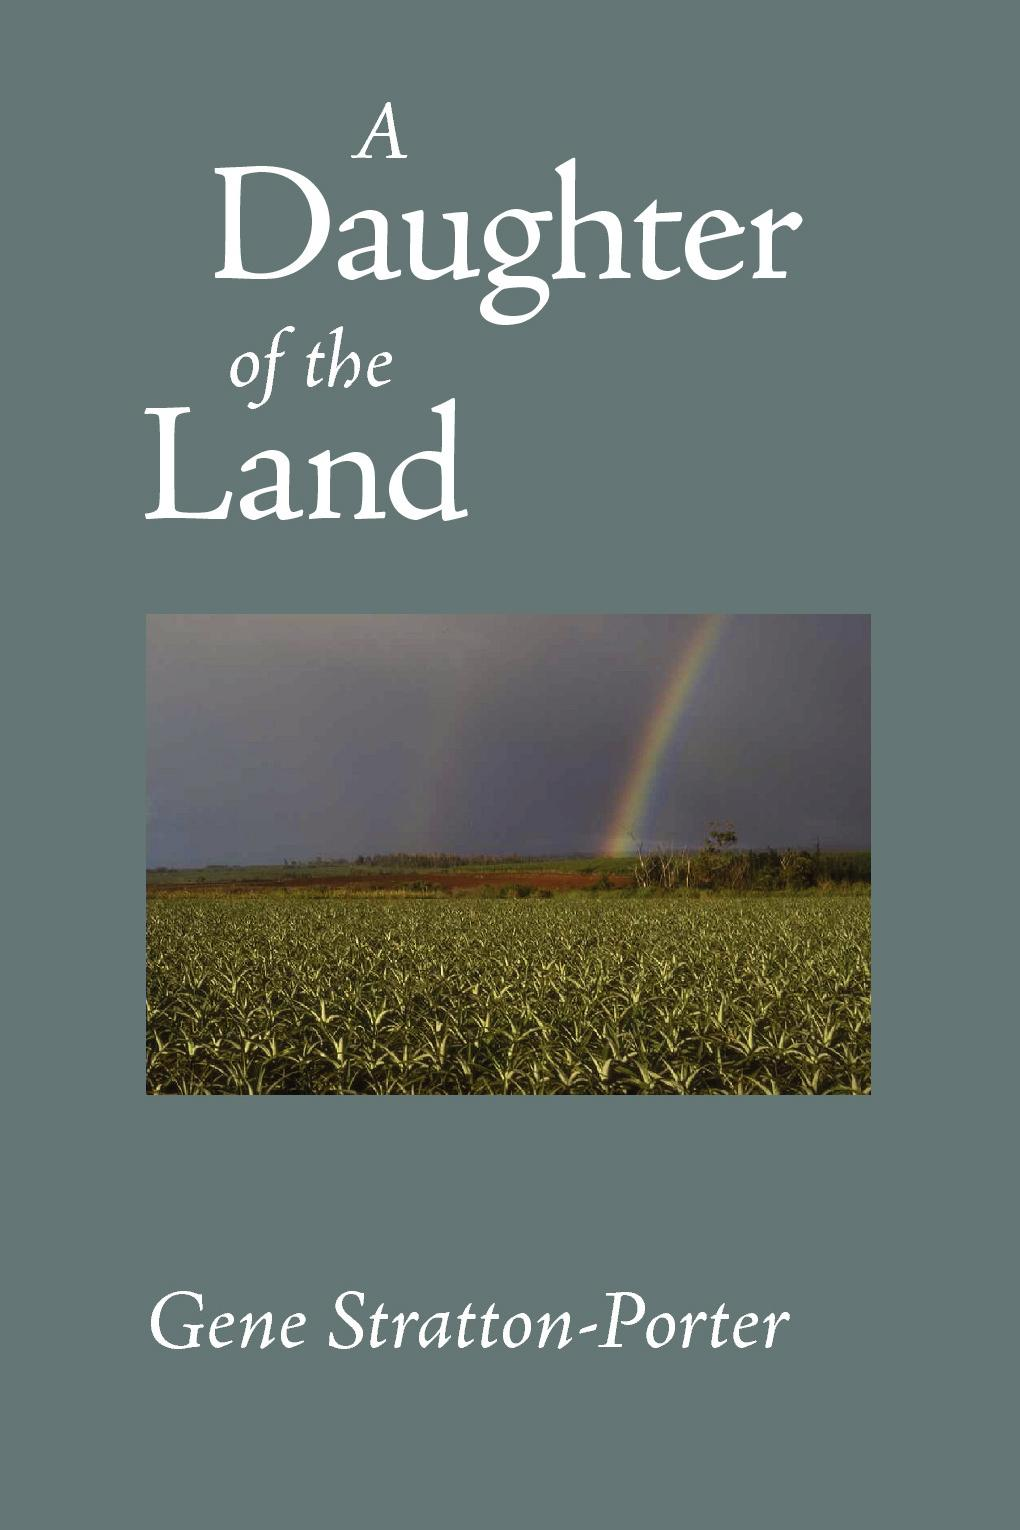 A Daughter of the Land by Gene Stratton-Porter, ISBN: 9781600961991